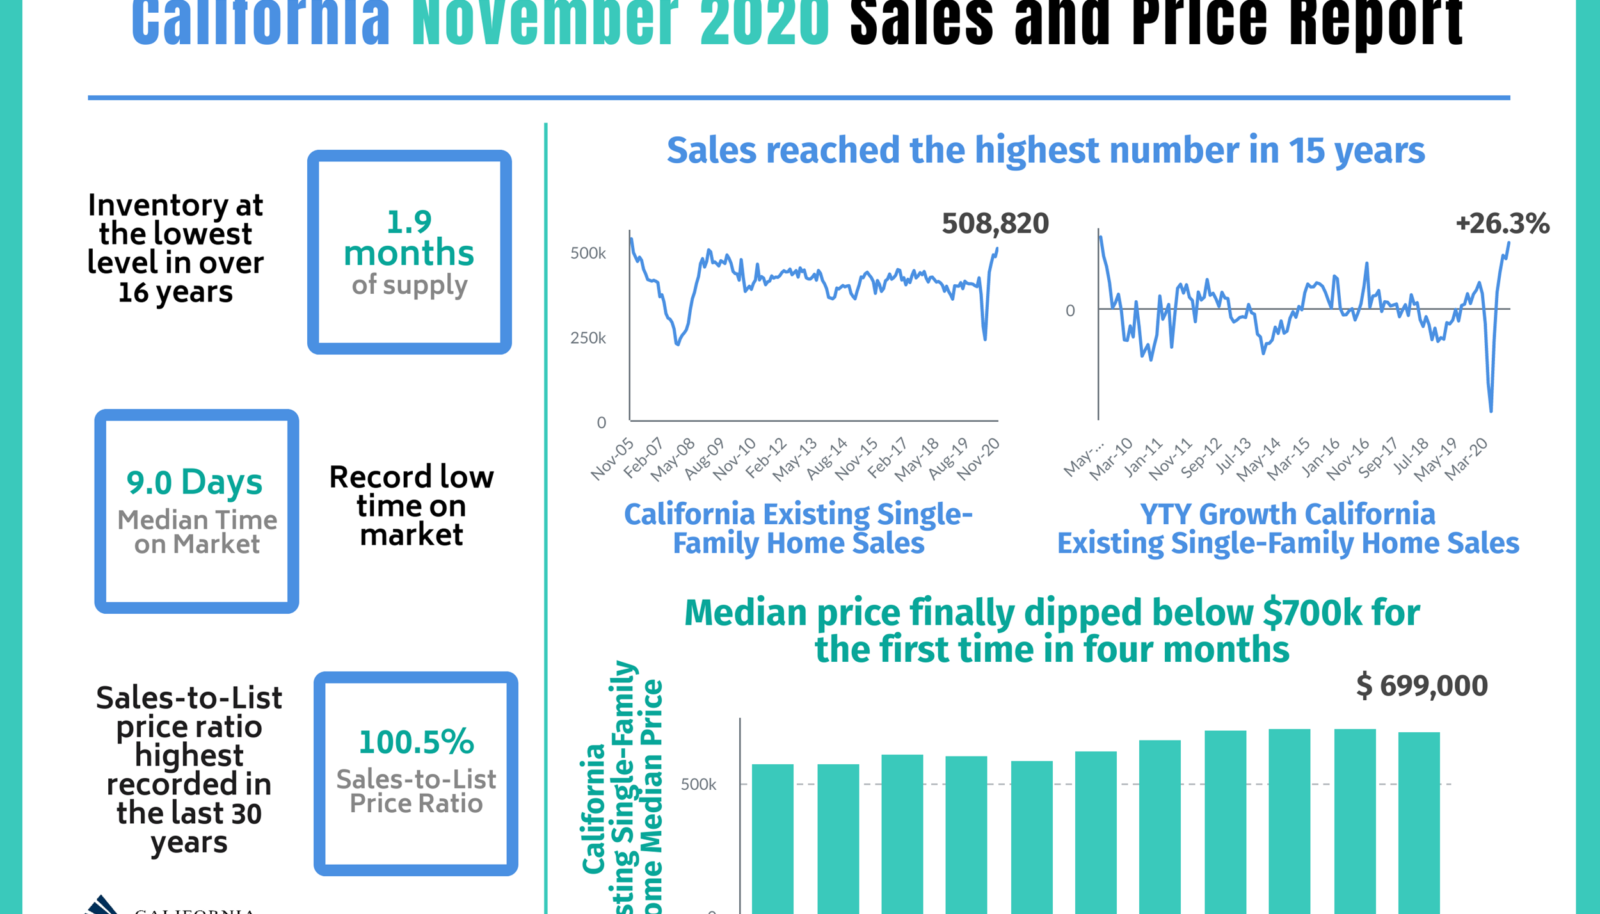 November's Sales and Price Report for 2020